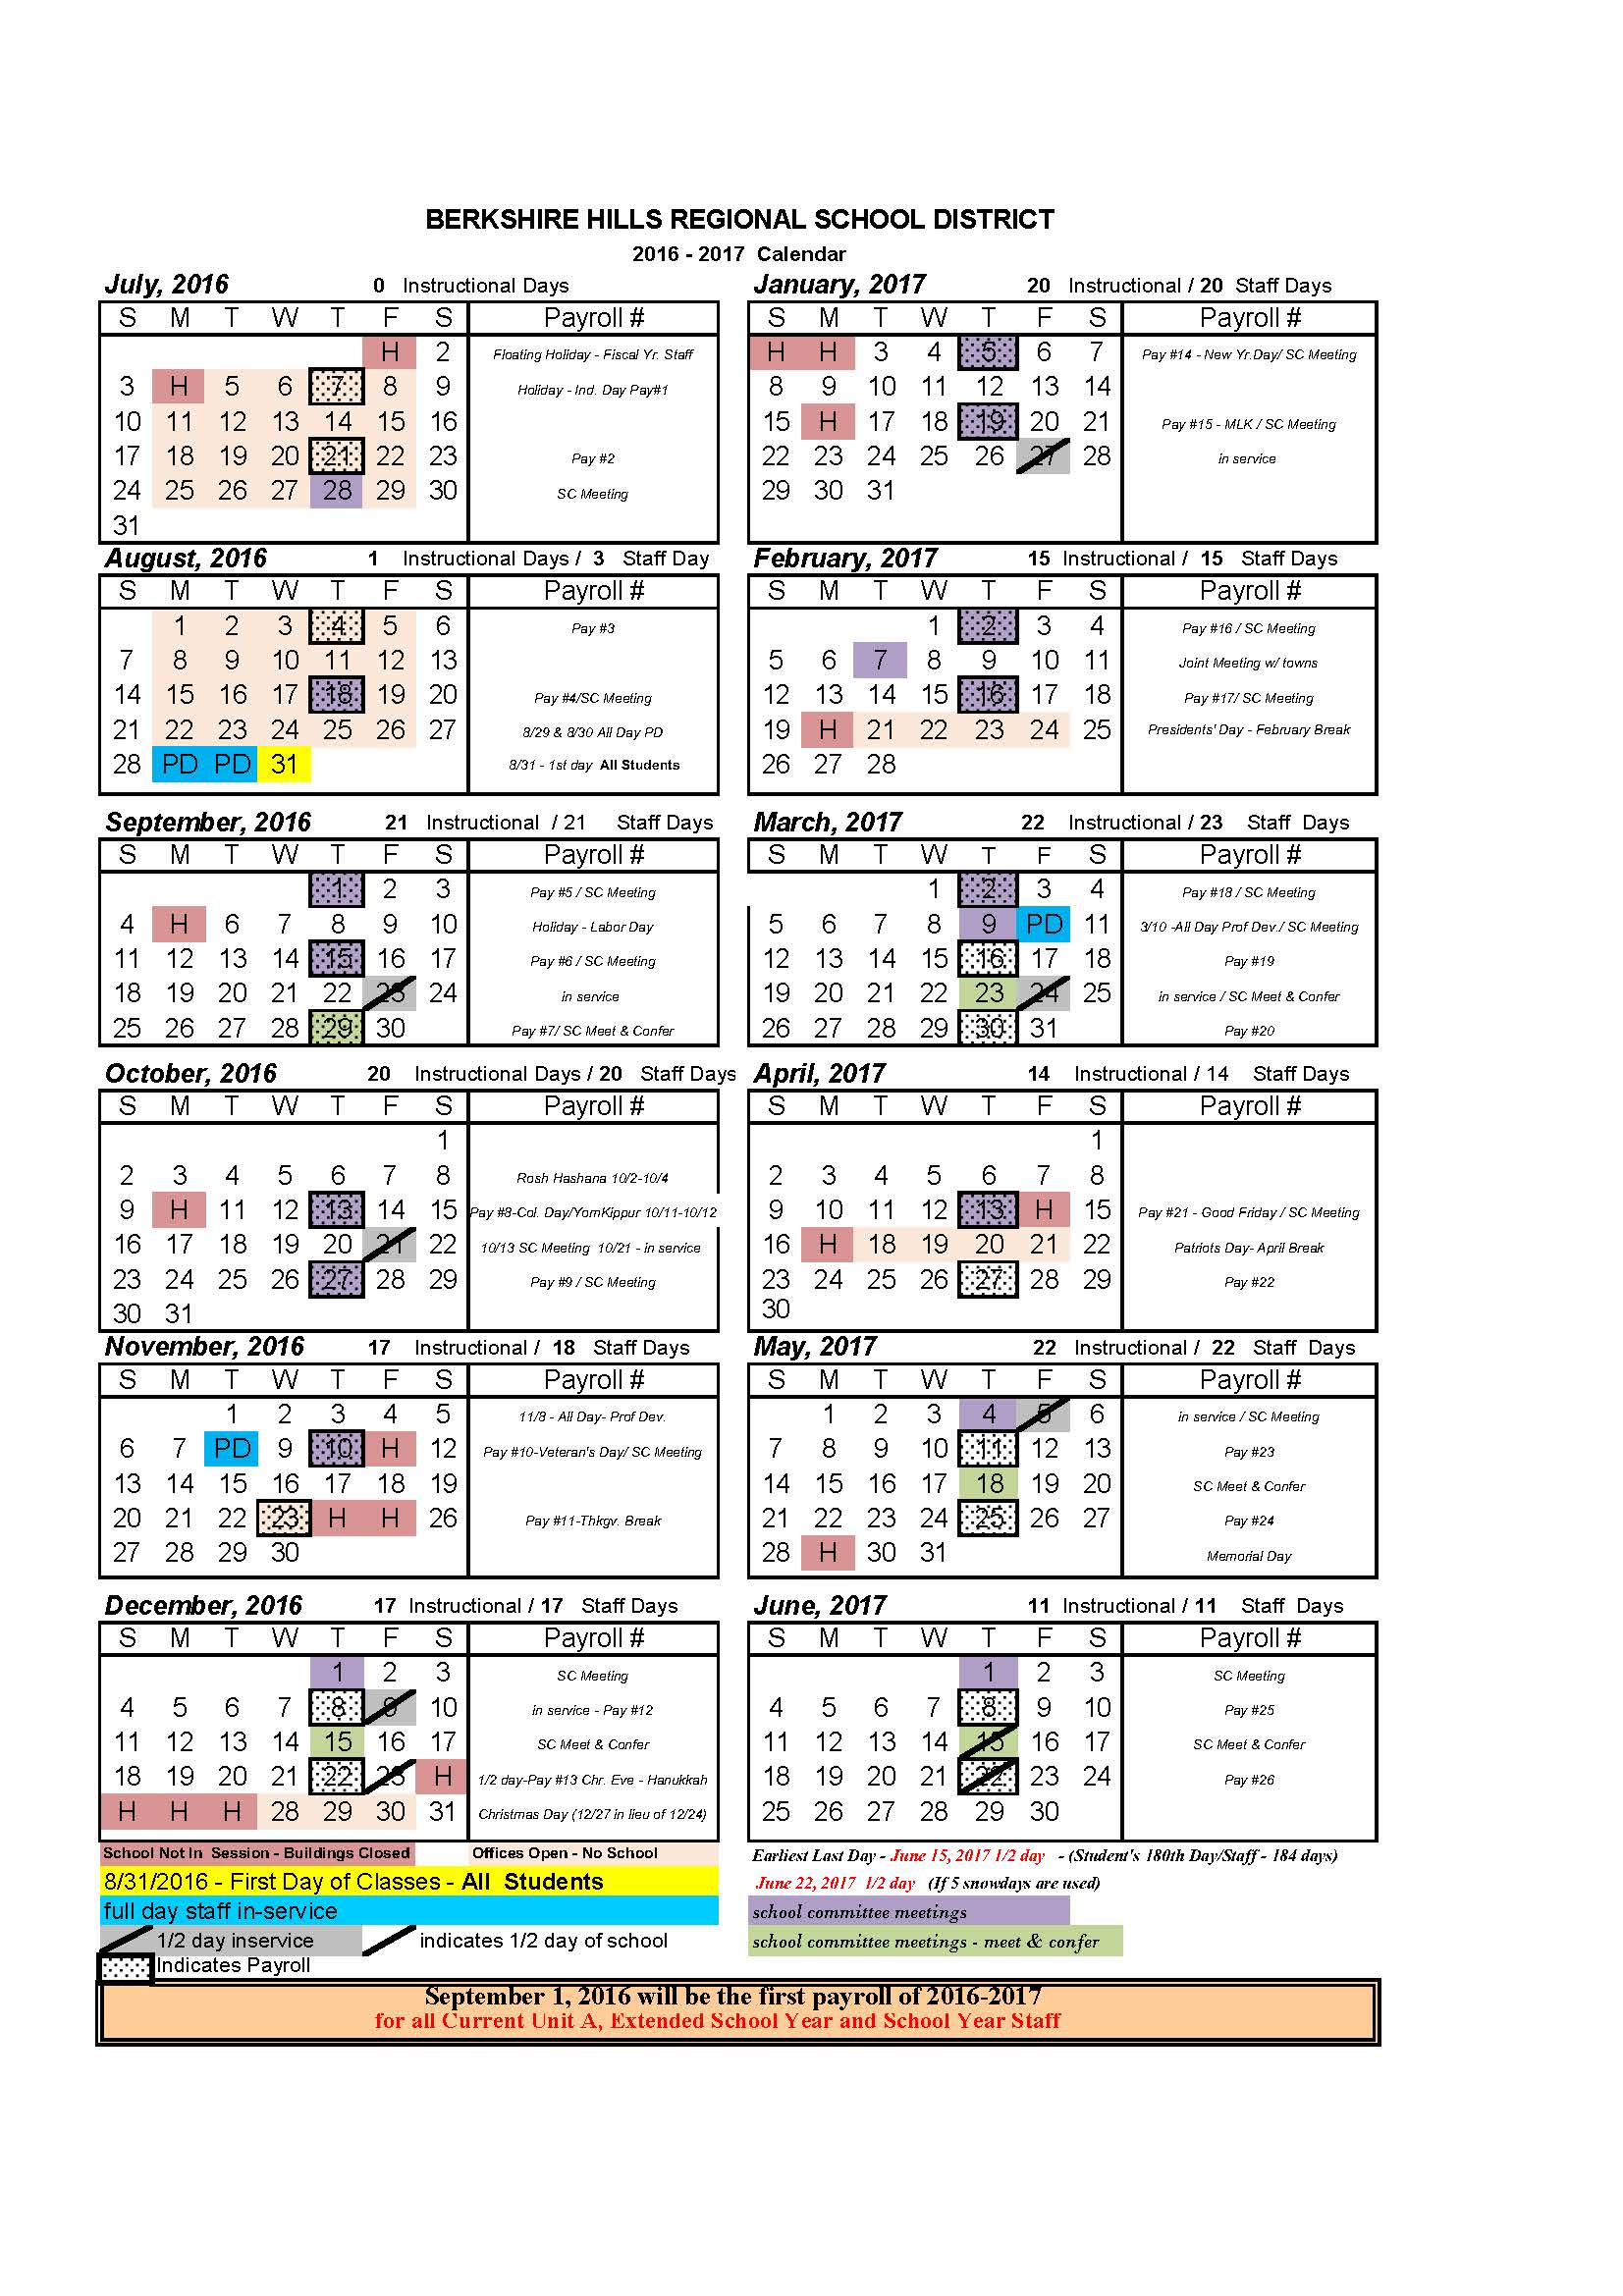 BHRSD 2016-17 School Year Calendar